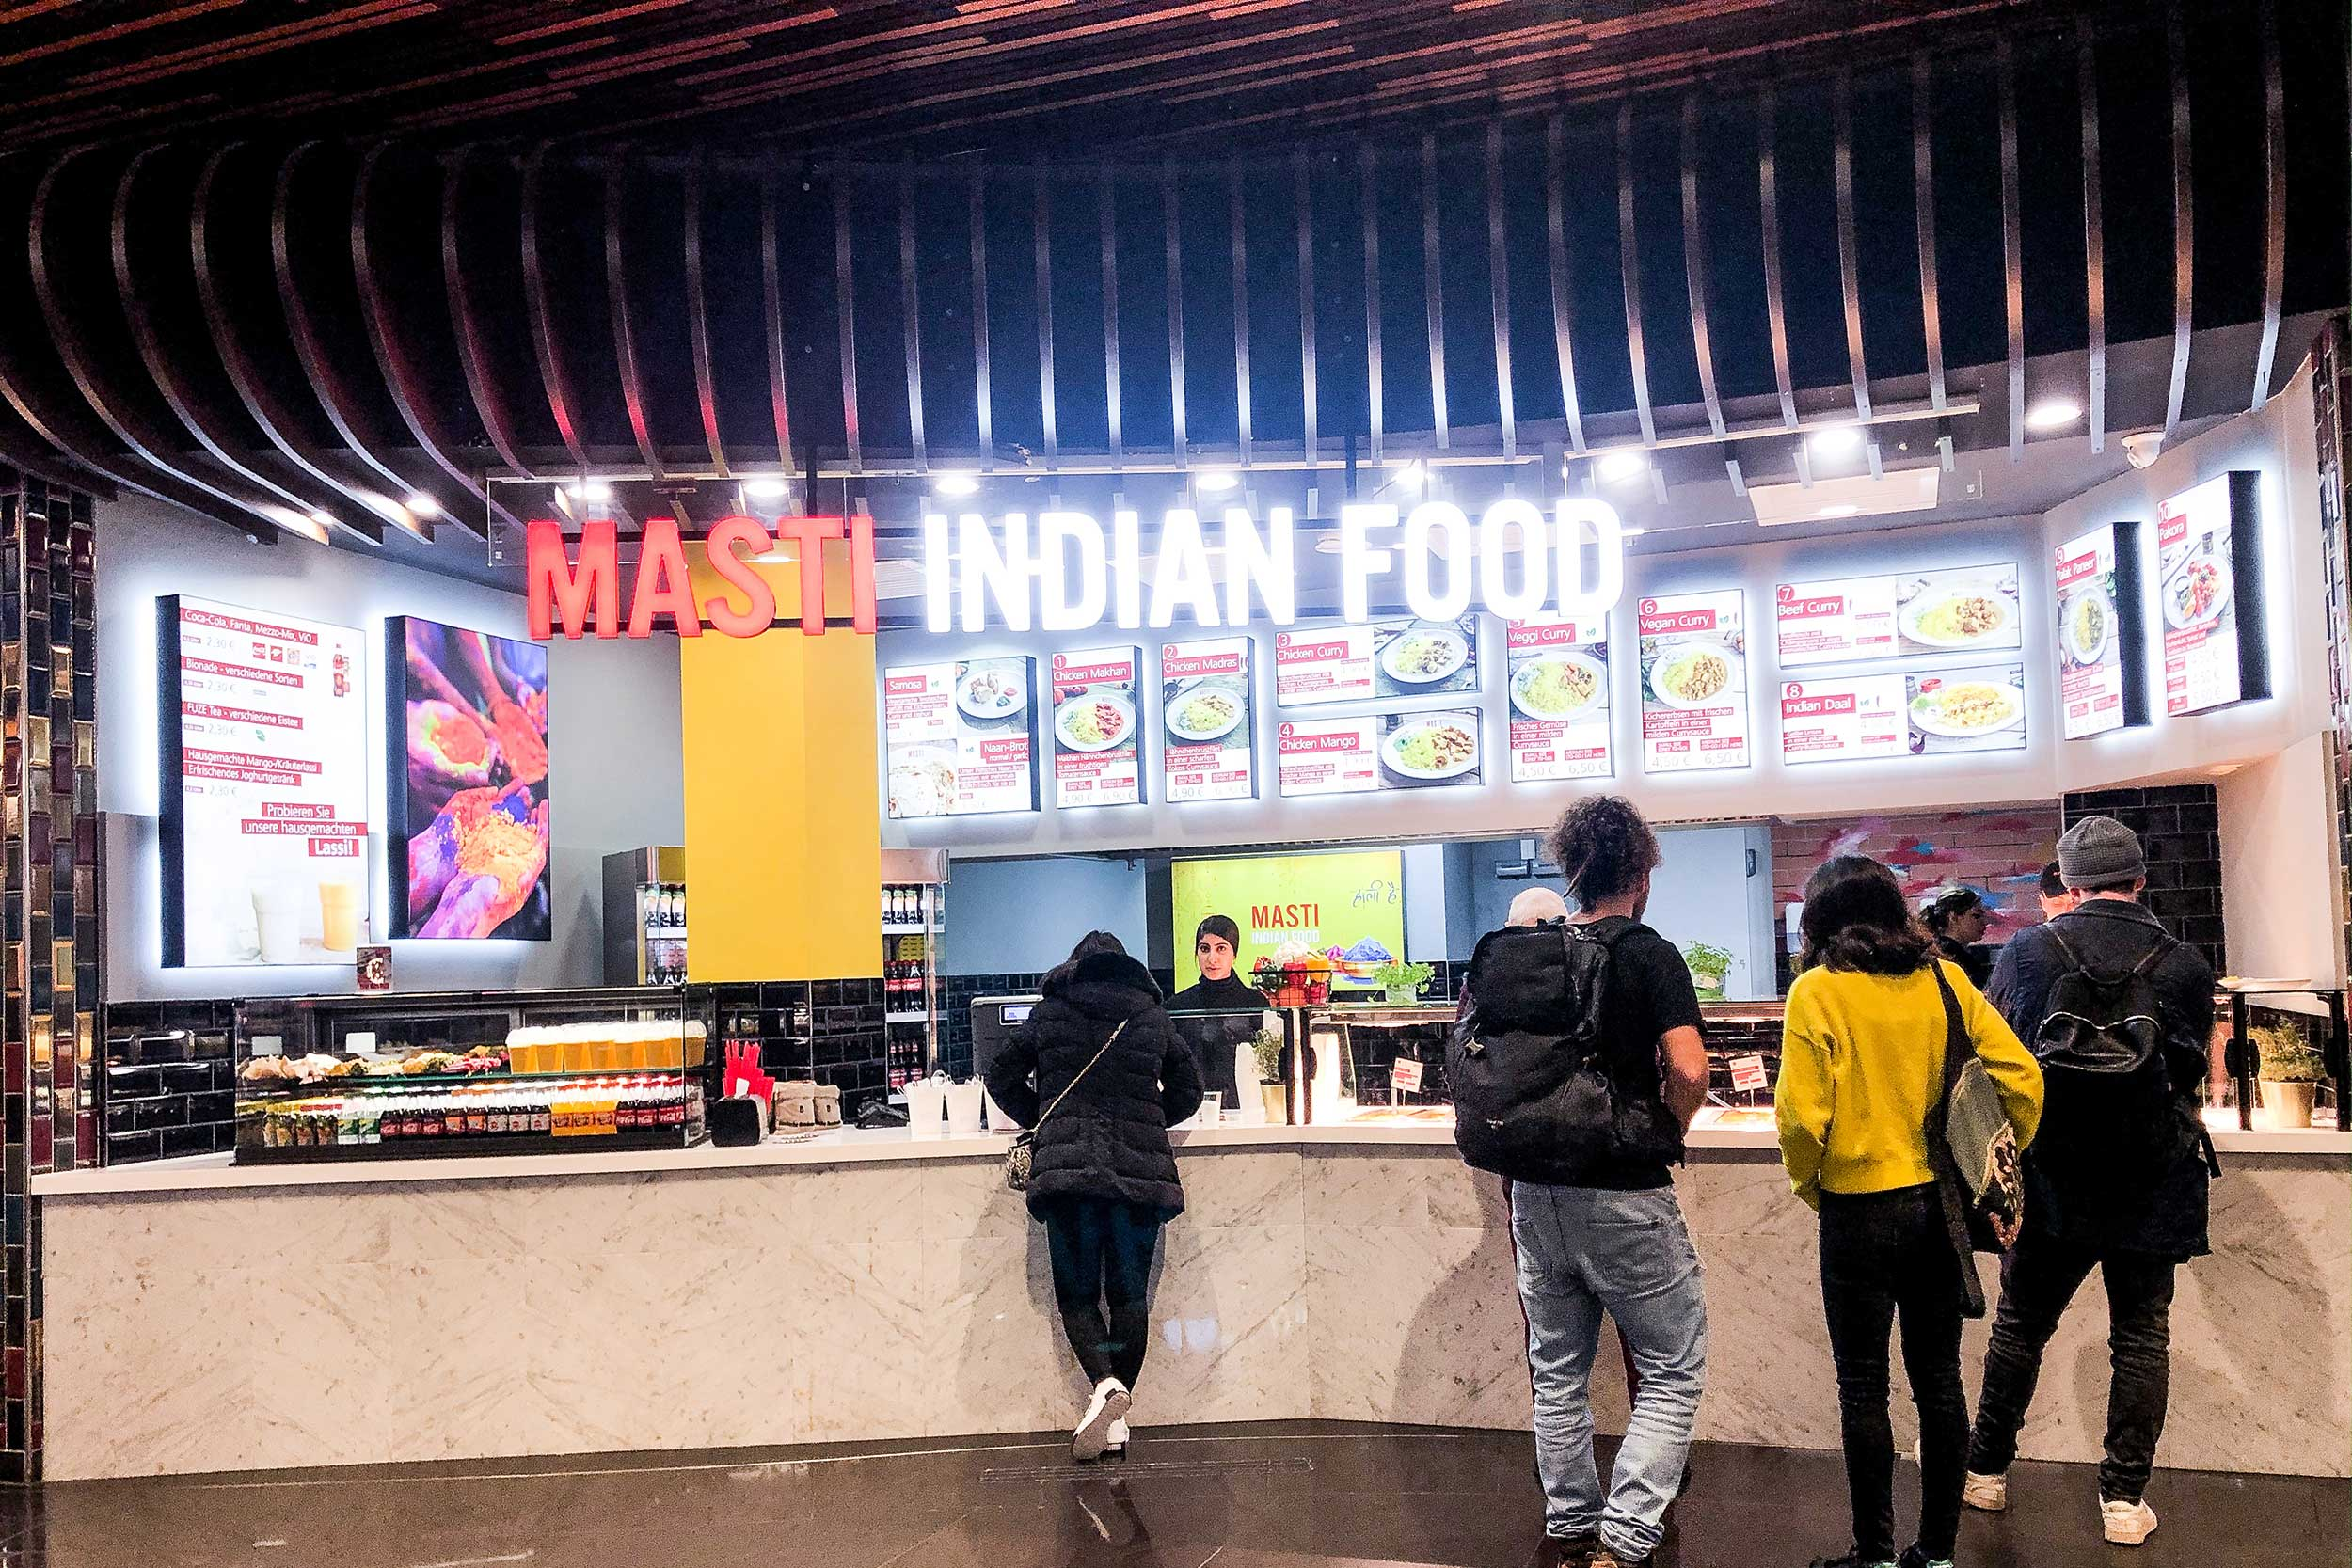 Masti Indian Food at the Mall of Berlin